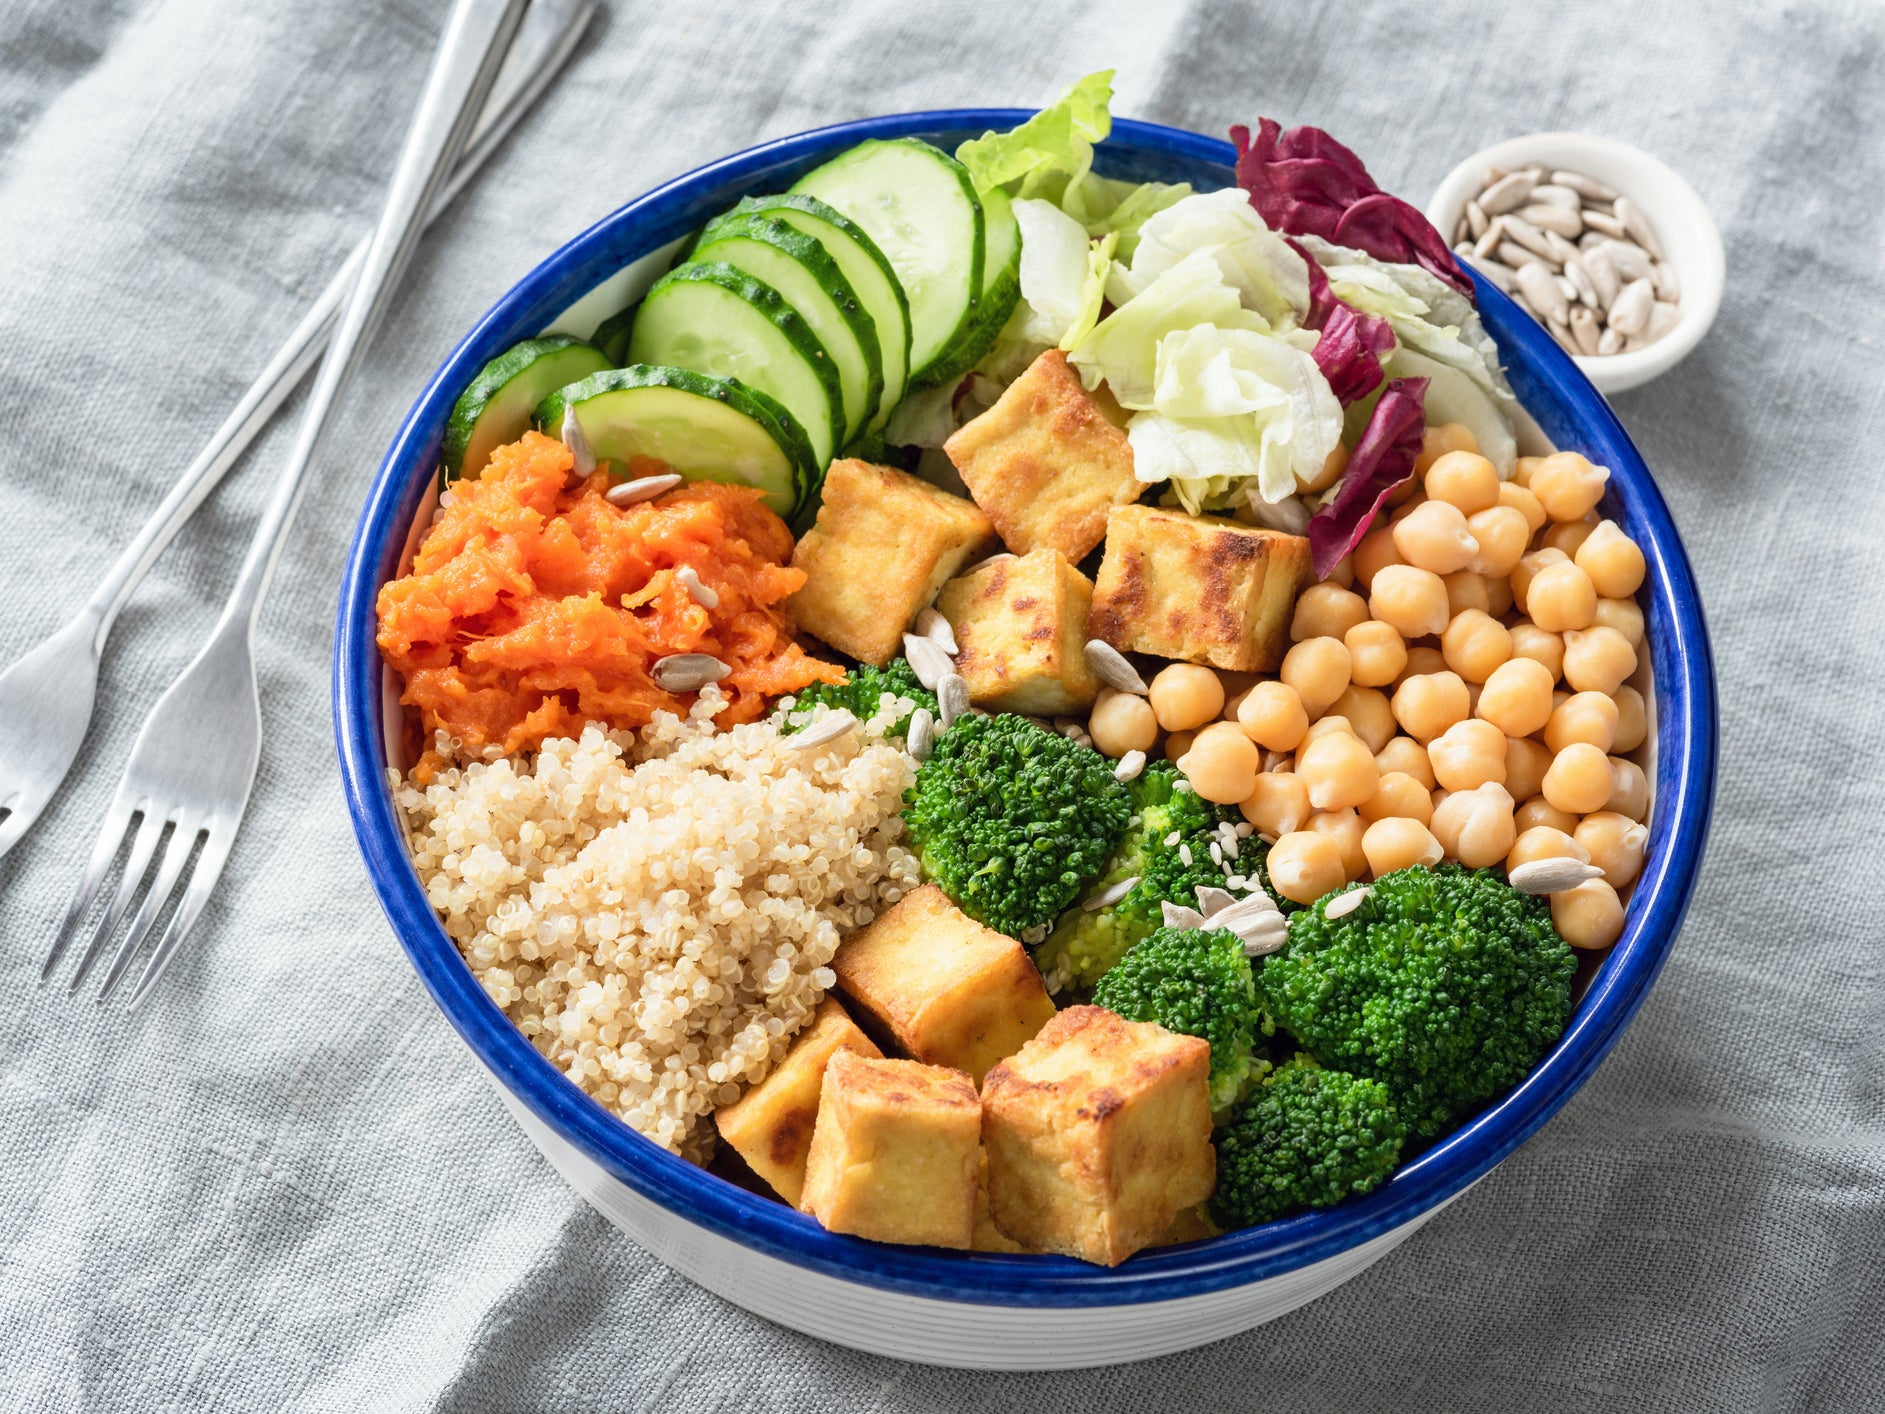 High Protein Vegetarian foods that substitute for a Non-Veg Meal